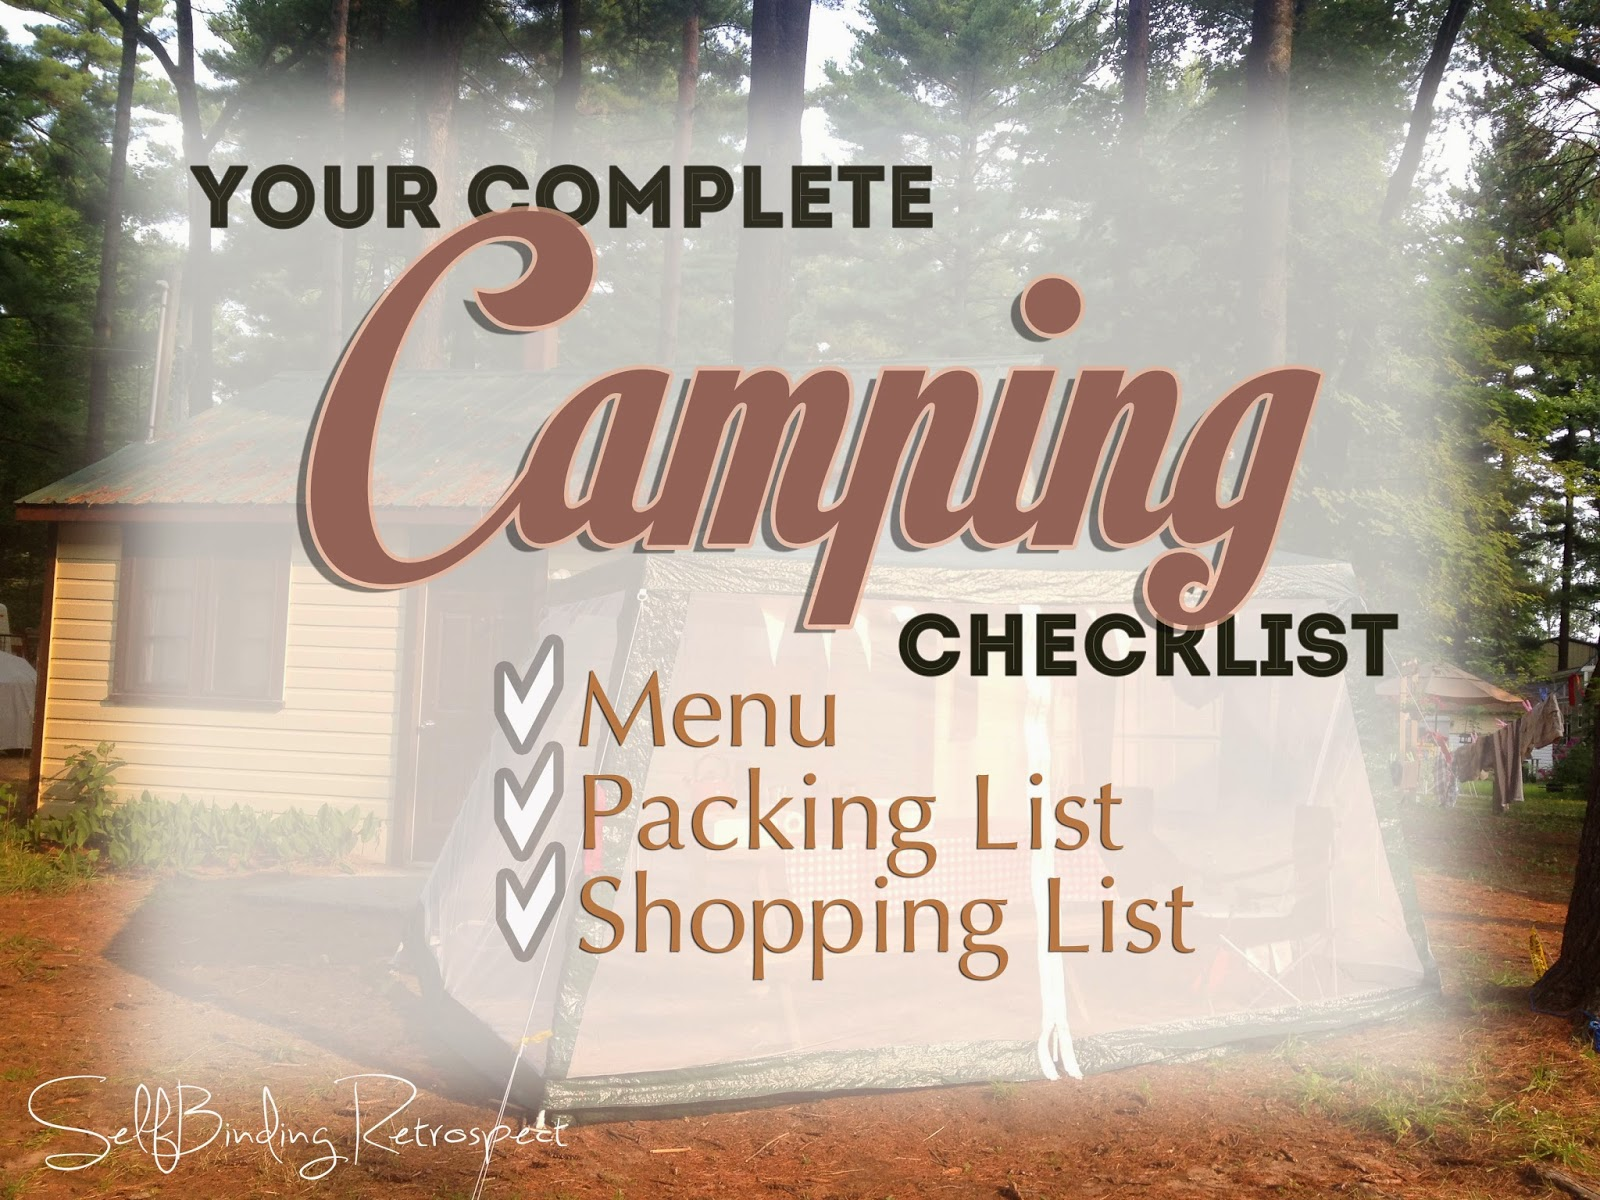 Your Complete Camping Checklist - SelfBinding Retrospect by Alanna Rusnak